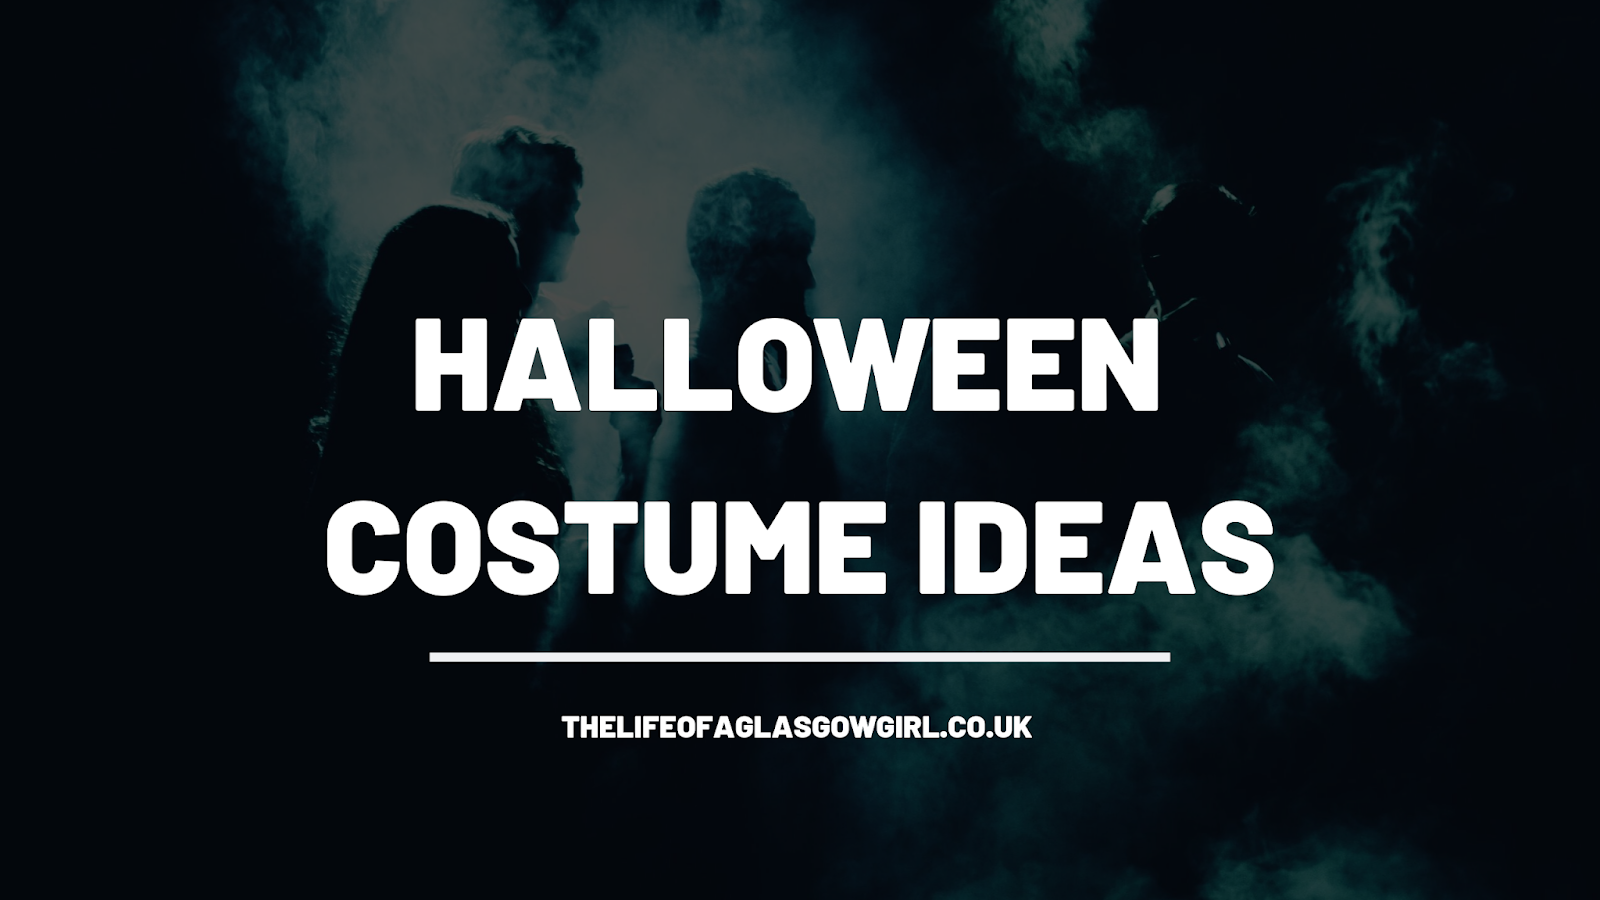 Halloween Costume ideas blog post graphic - photo of people walking through smoke with white writing across it that says halloween costume ideas on thelifeofaglasgowgirl.co.uk